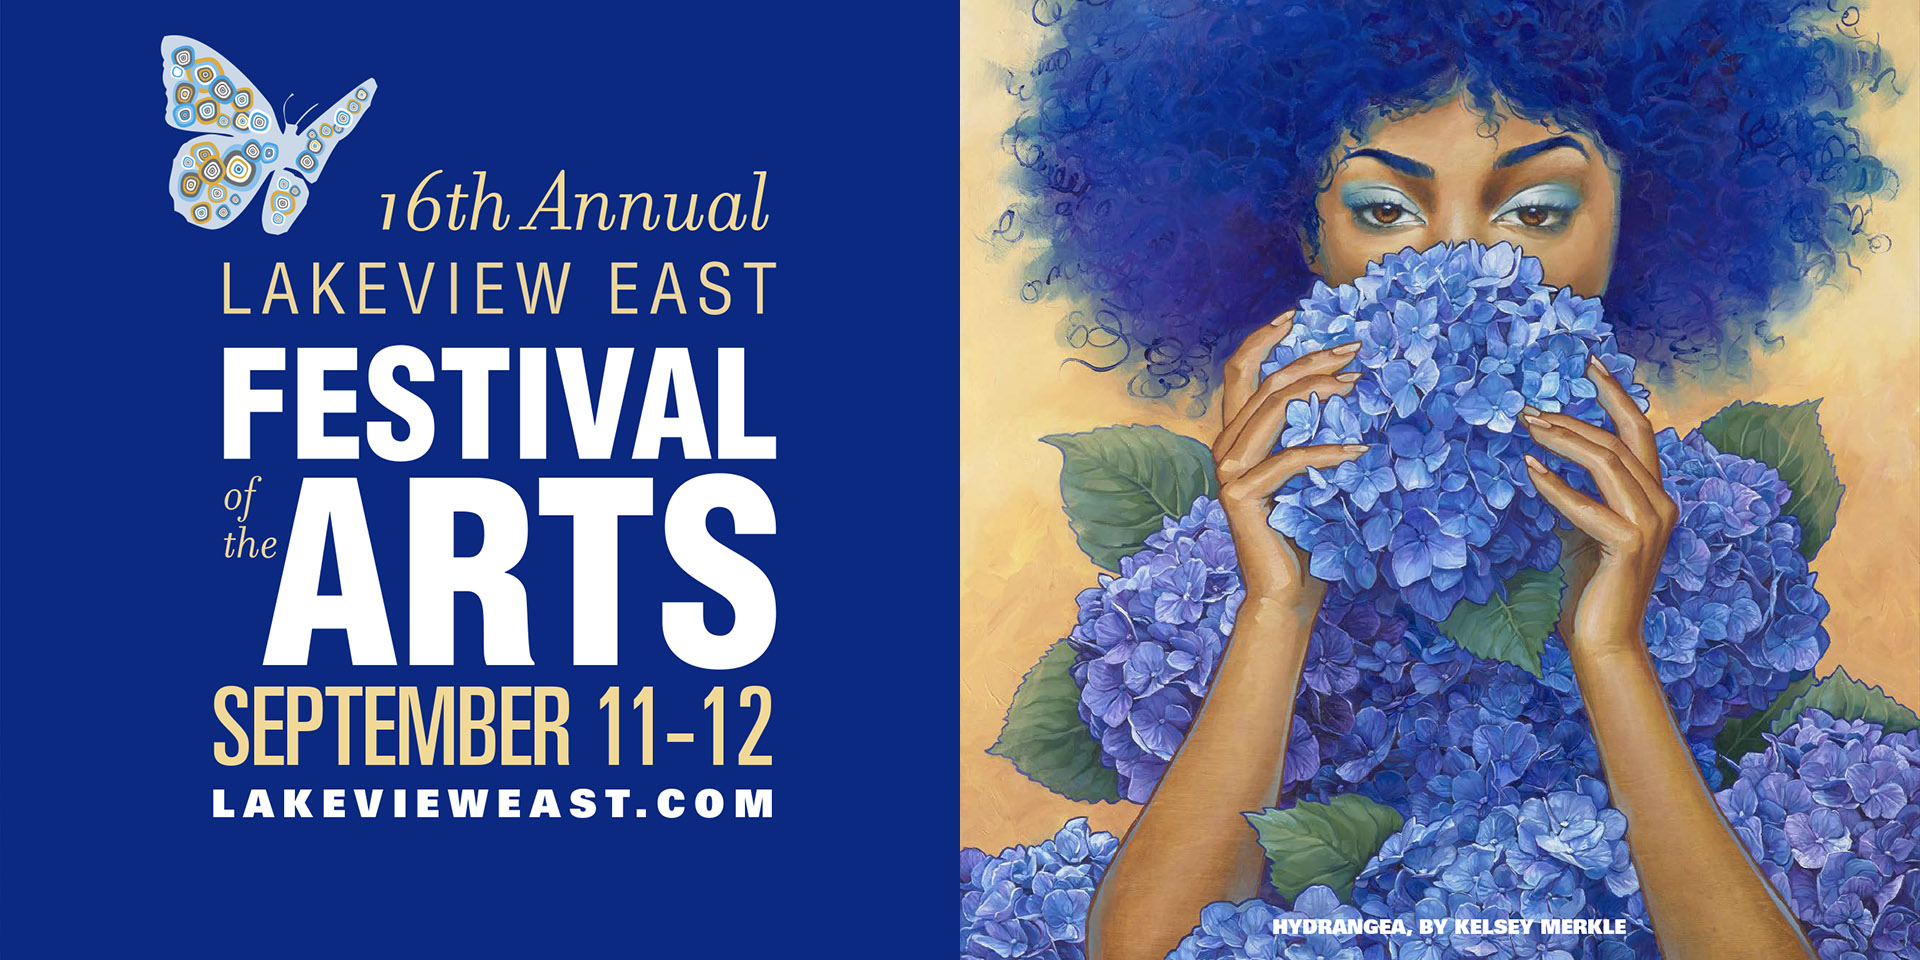 Lakeview East Festival of the Arts